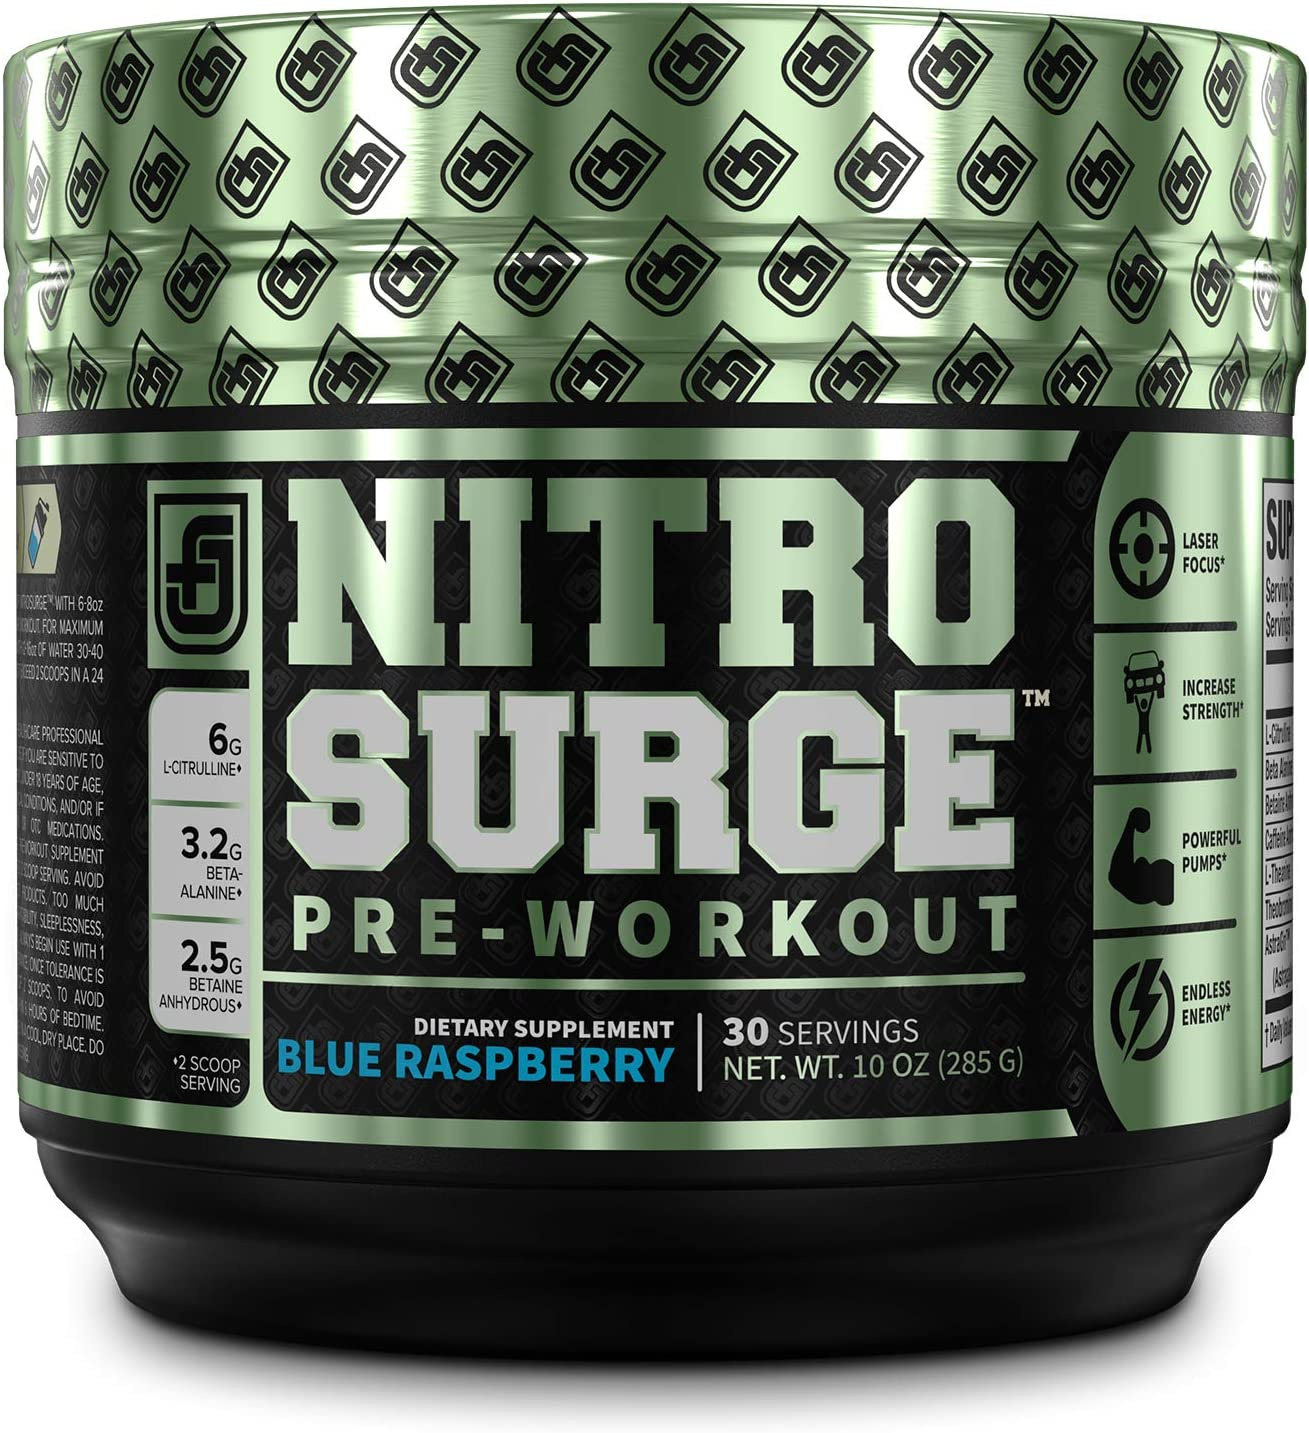 Amazon.com: NITROSURGE Pre Workout Supplement - Energy Booster, Instant  Strength Gains, Clear Focus, & Intense Pumps - Nitric Oxide Booster &  Powerful Preworkout Energy Powder - 30 Servings, Blue Raspberry: Health &  Personal Care